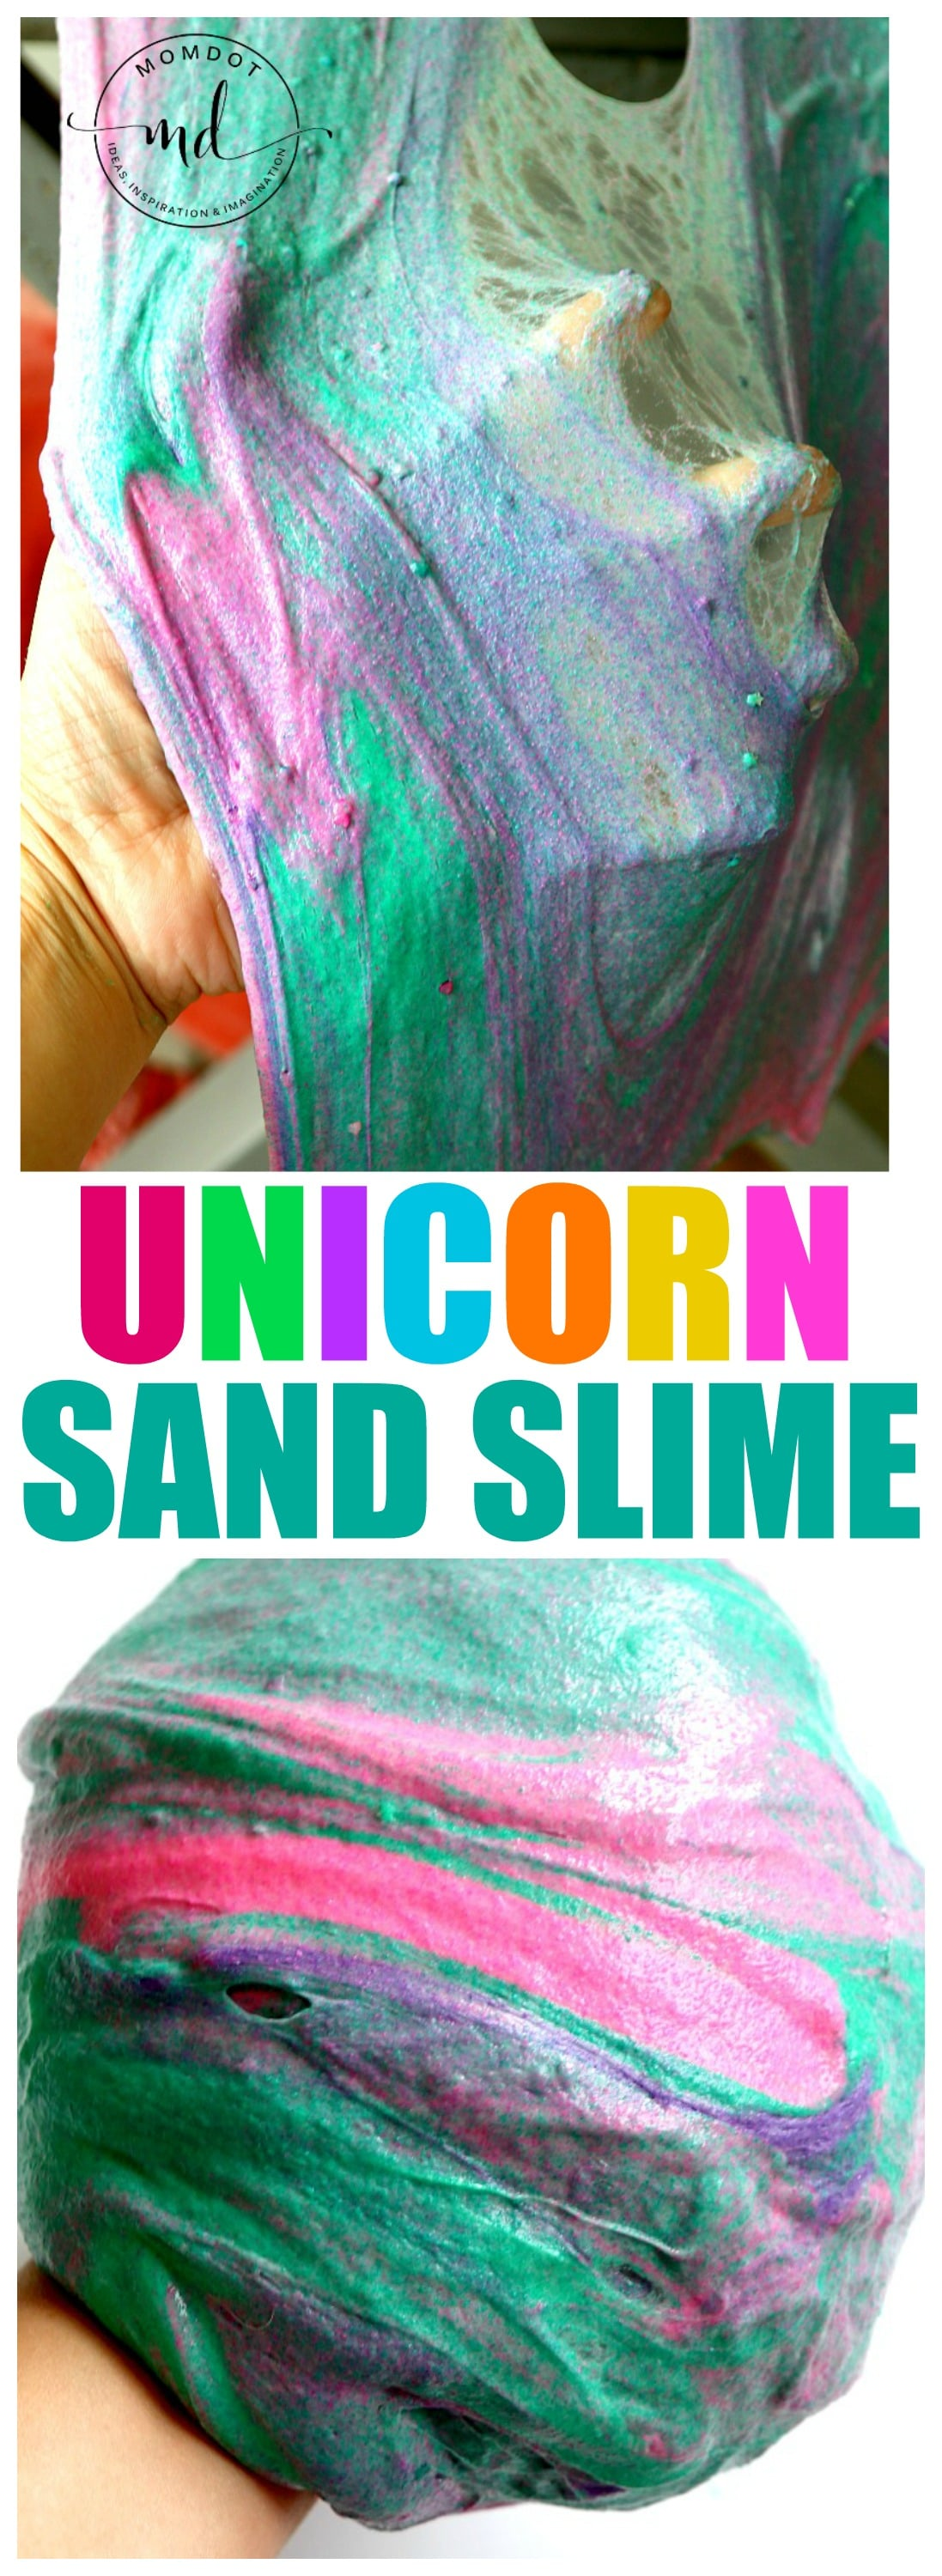 Unicorn Sand Slime Recipe : Make sand slime for a fun slime sensory experiance